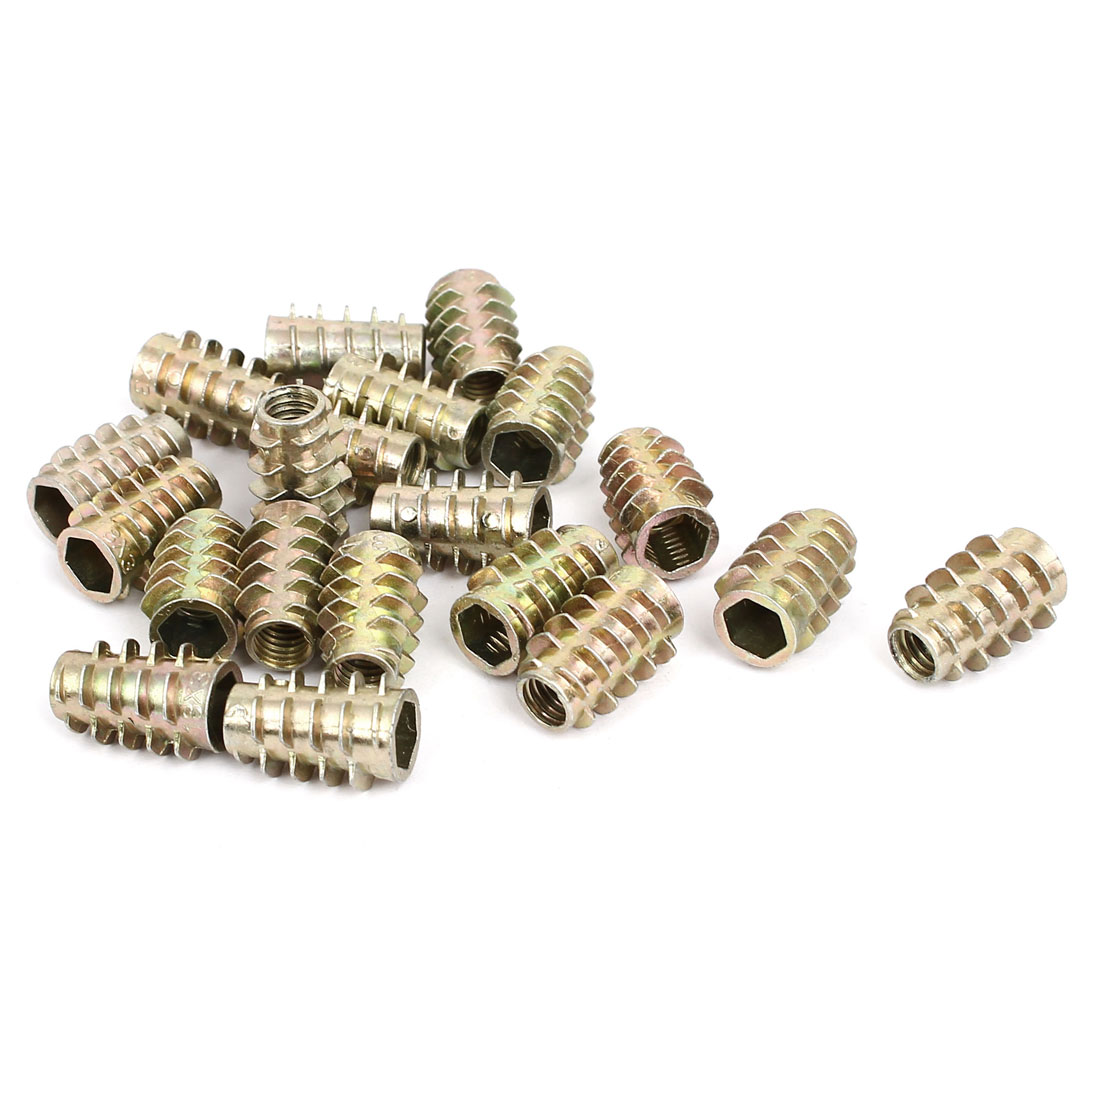 M6x18mm Zinc Plated Hex Socket Screw in Thread Insert Nut 20pcs for Wood